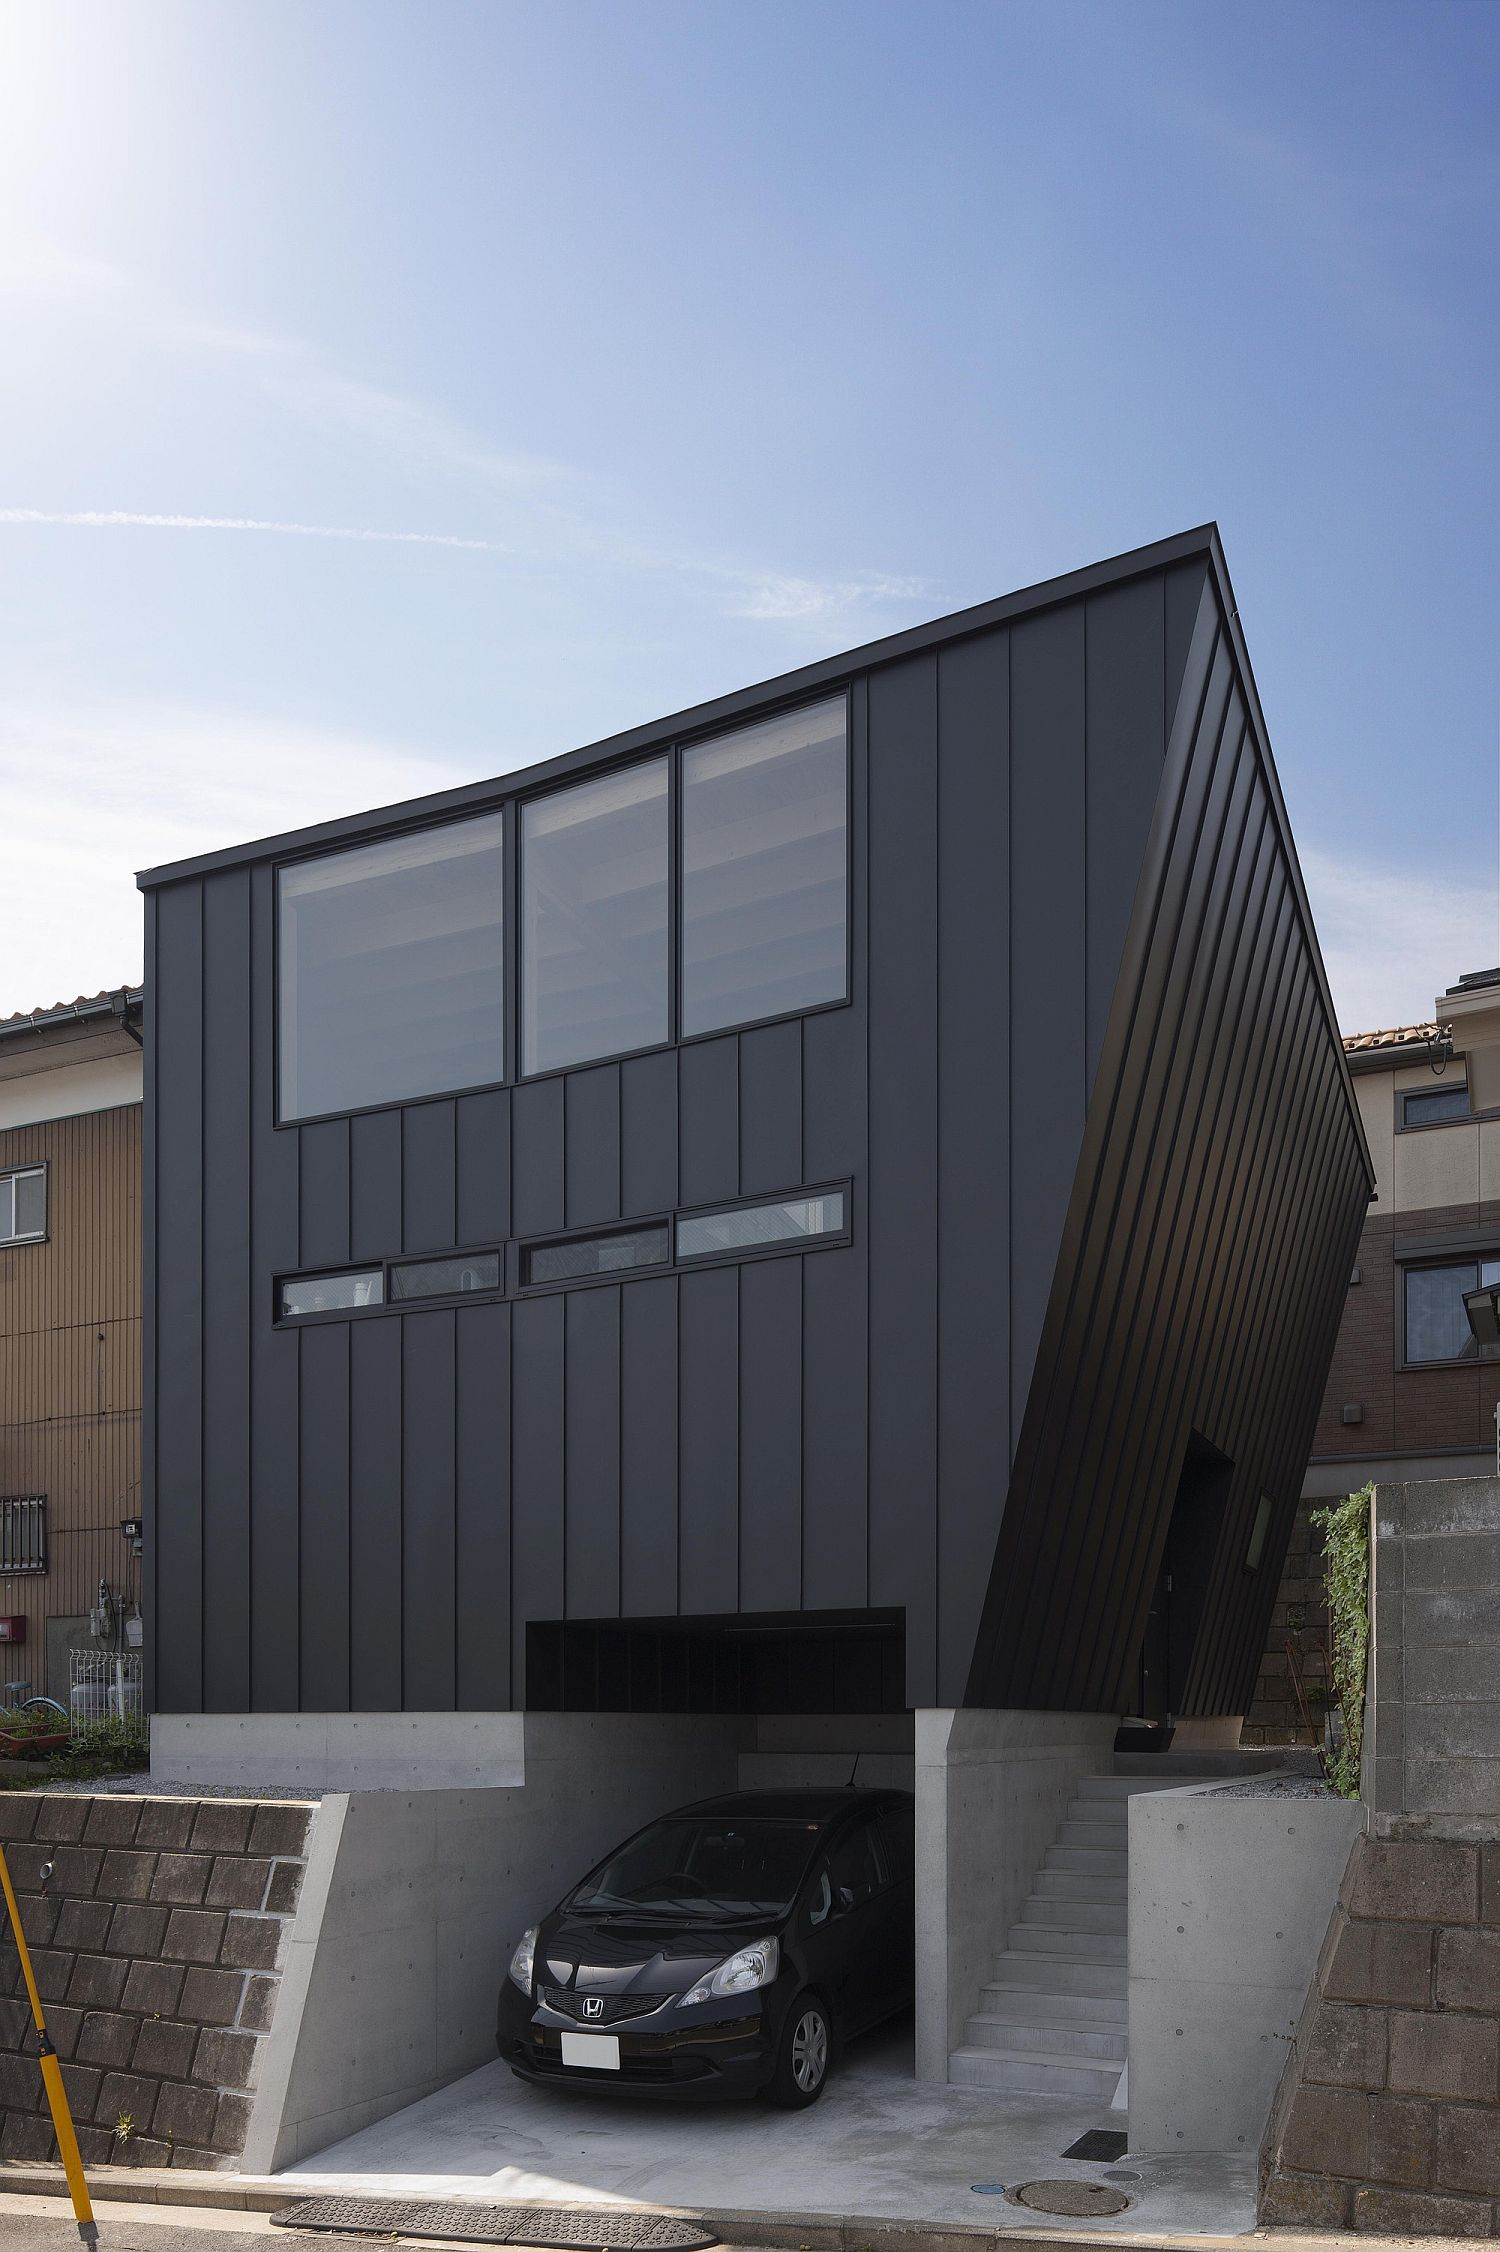 Unique facade of the Japanese home in black with carport